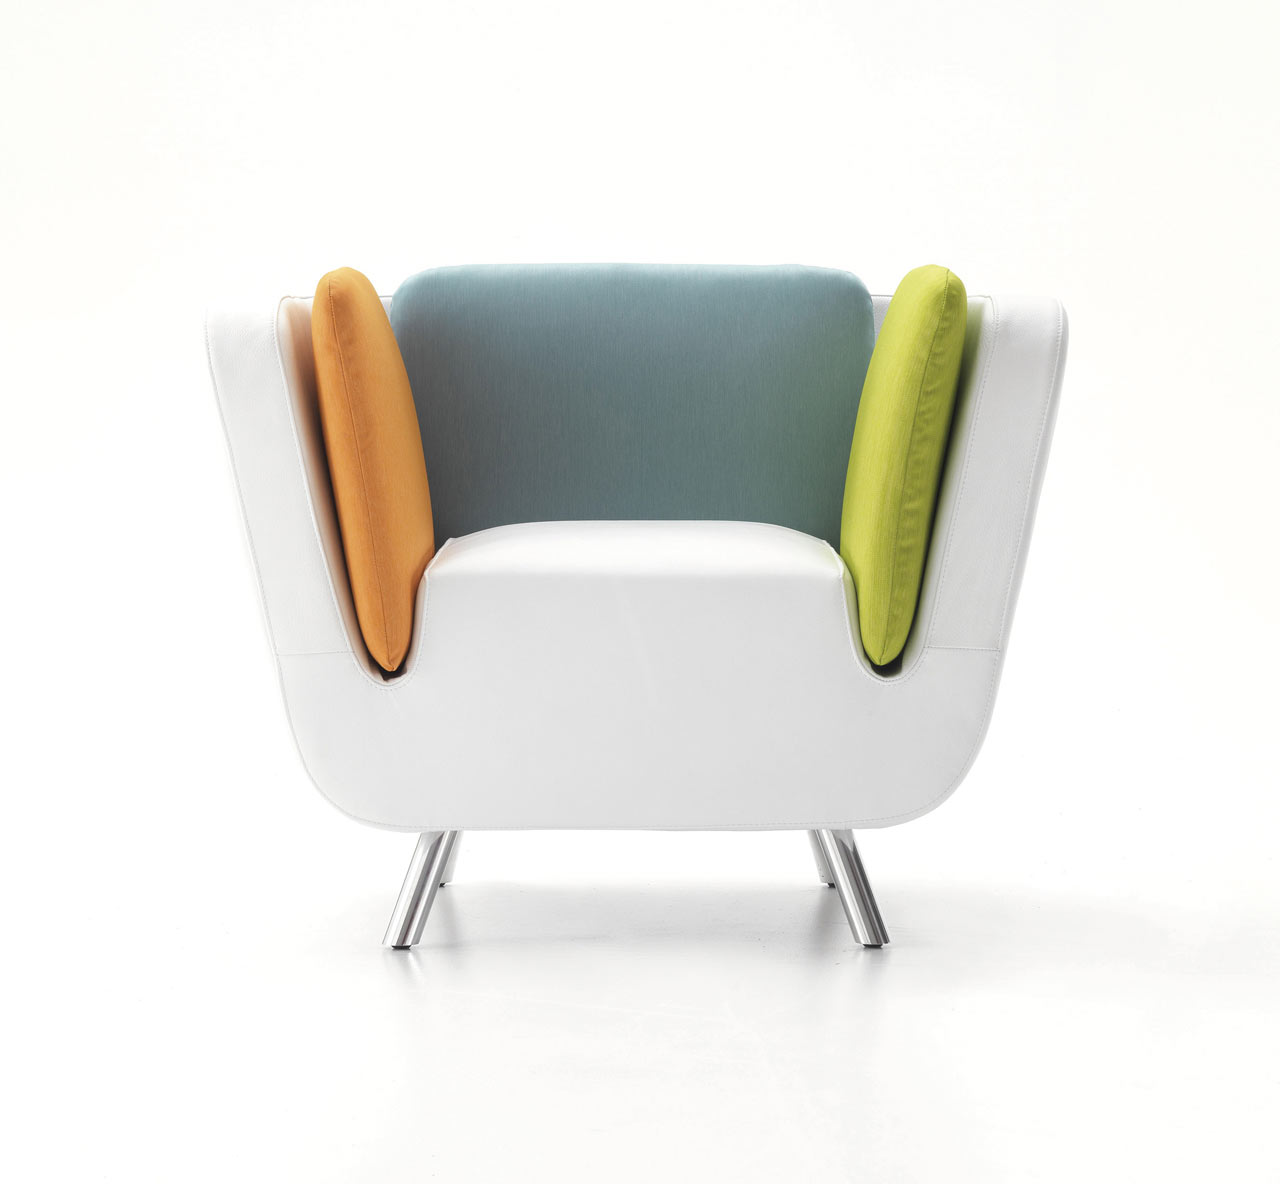 chair design famous white swivel desk chairs nook lounge and matching luggage by karim rashid